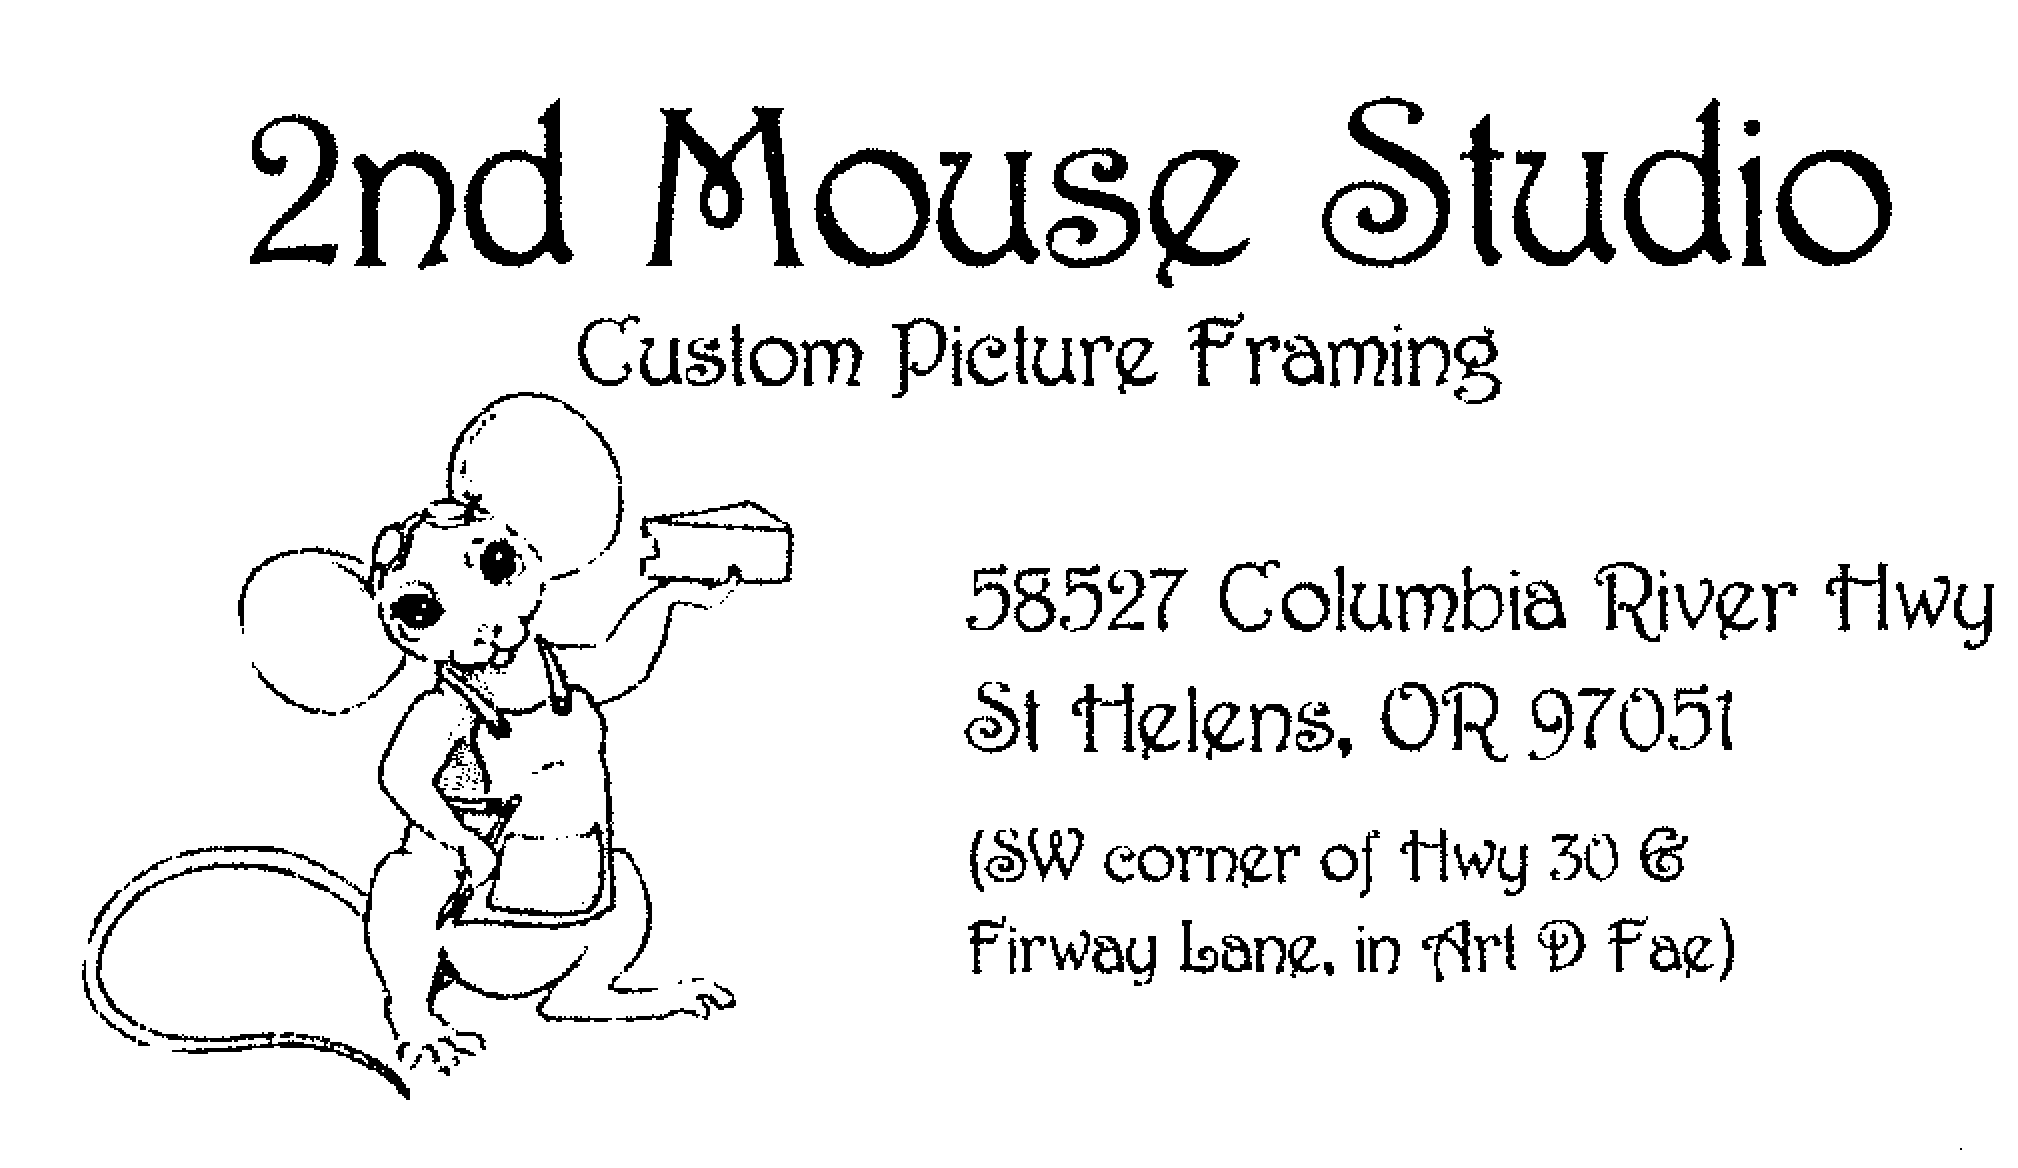 2nd mouse studio logo